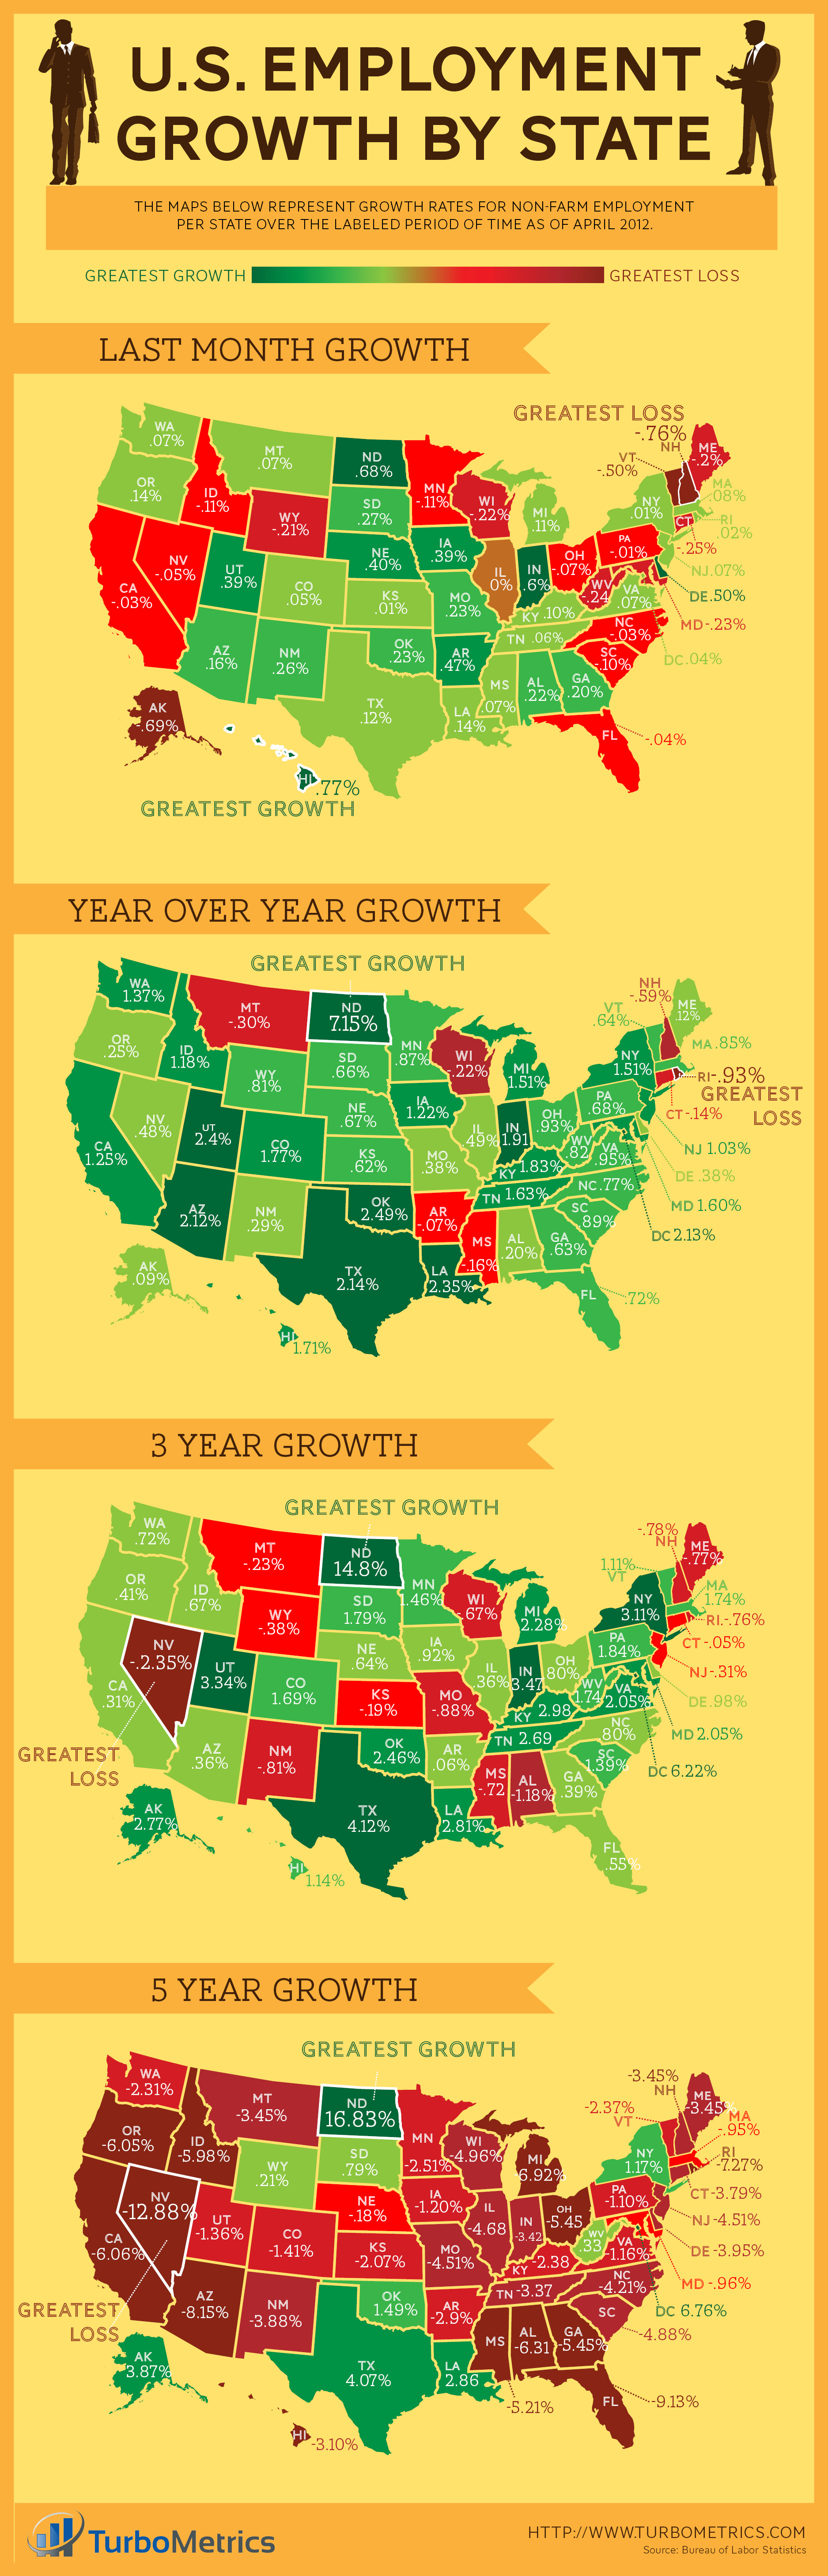 employment growth by State 1 month 1 year 3 year 5 year